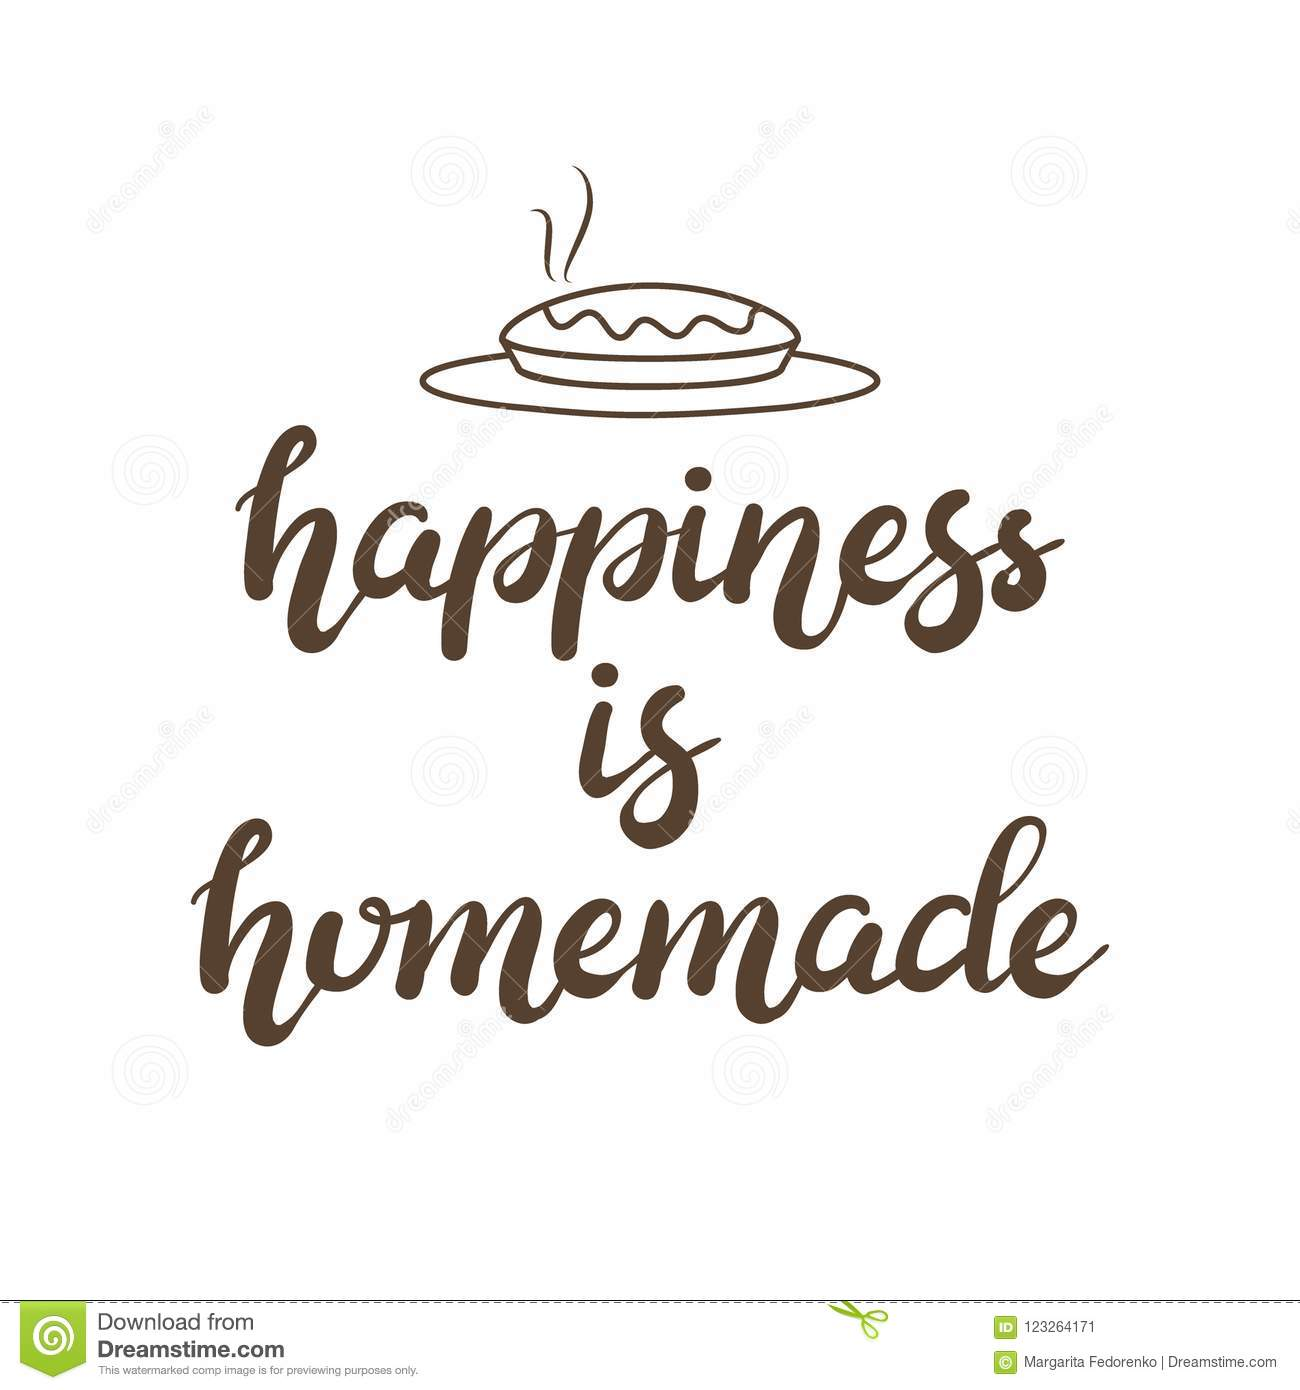 Hand drawn Happiness is homemade typography lettering poster background, isolated. Text and decor - pie silhouette. Gift card, banner template.